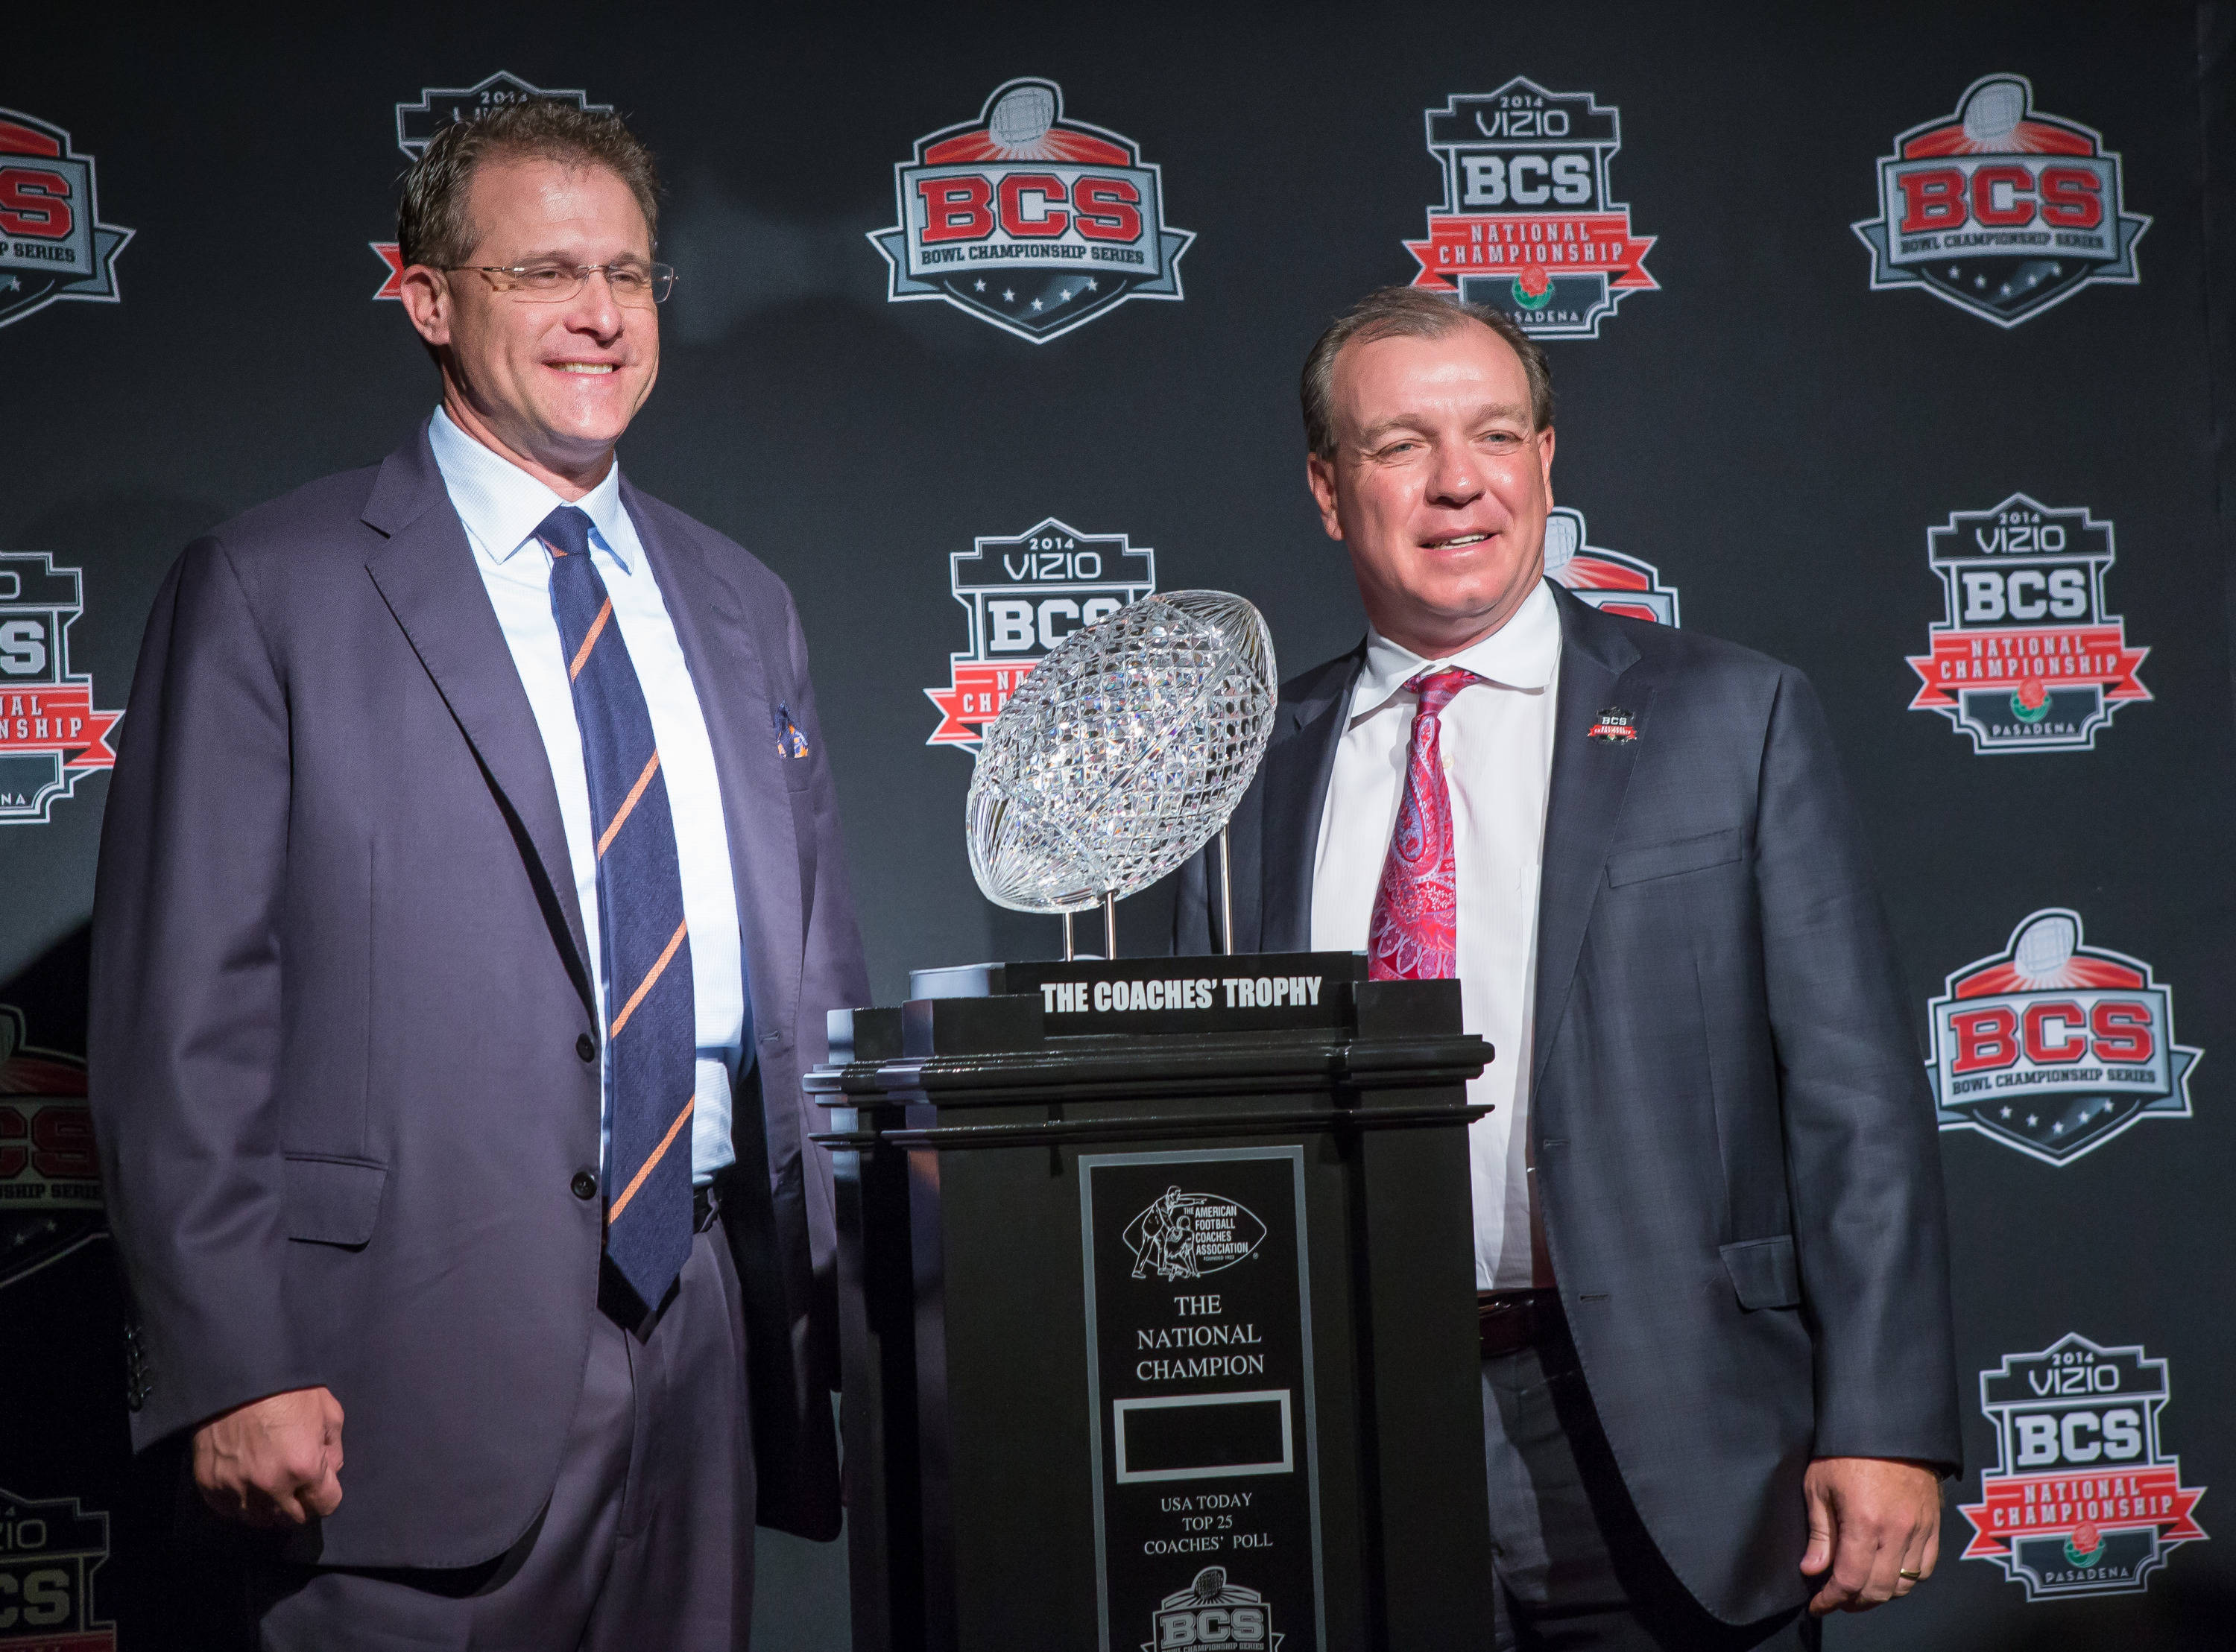 Jimbo Fisher and Auburn Coach Gus Malzahn pose with the Championship Trophy.